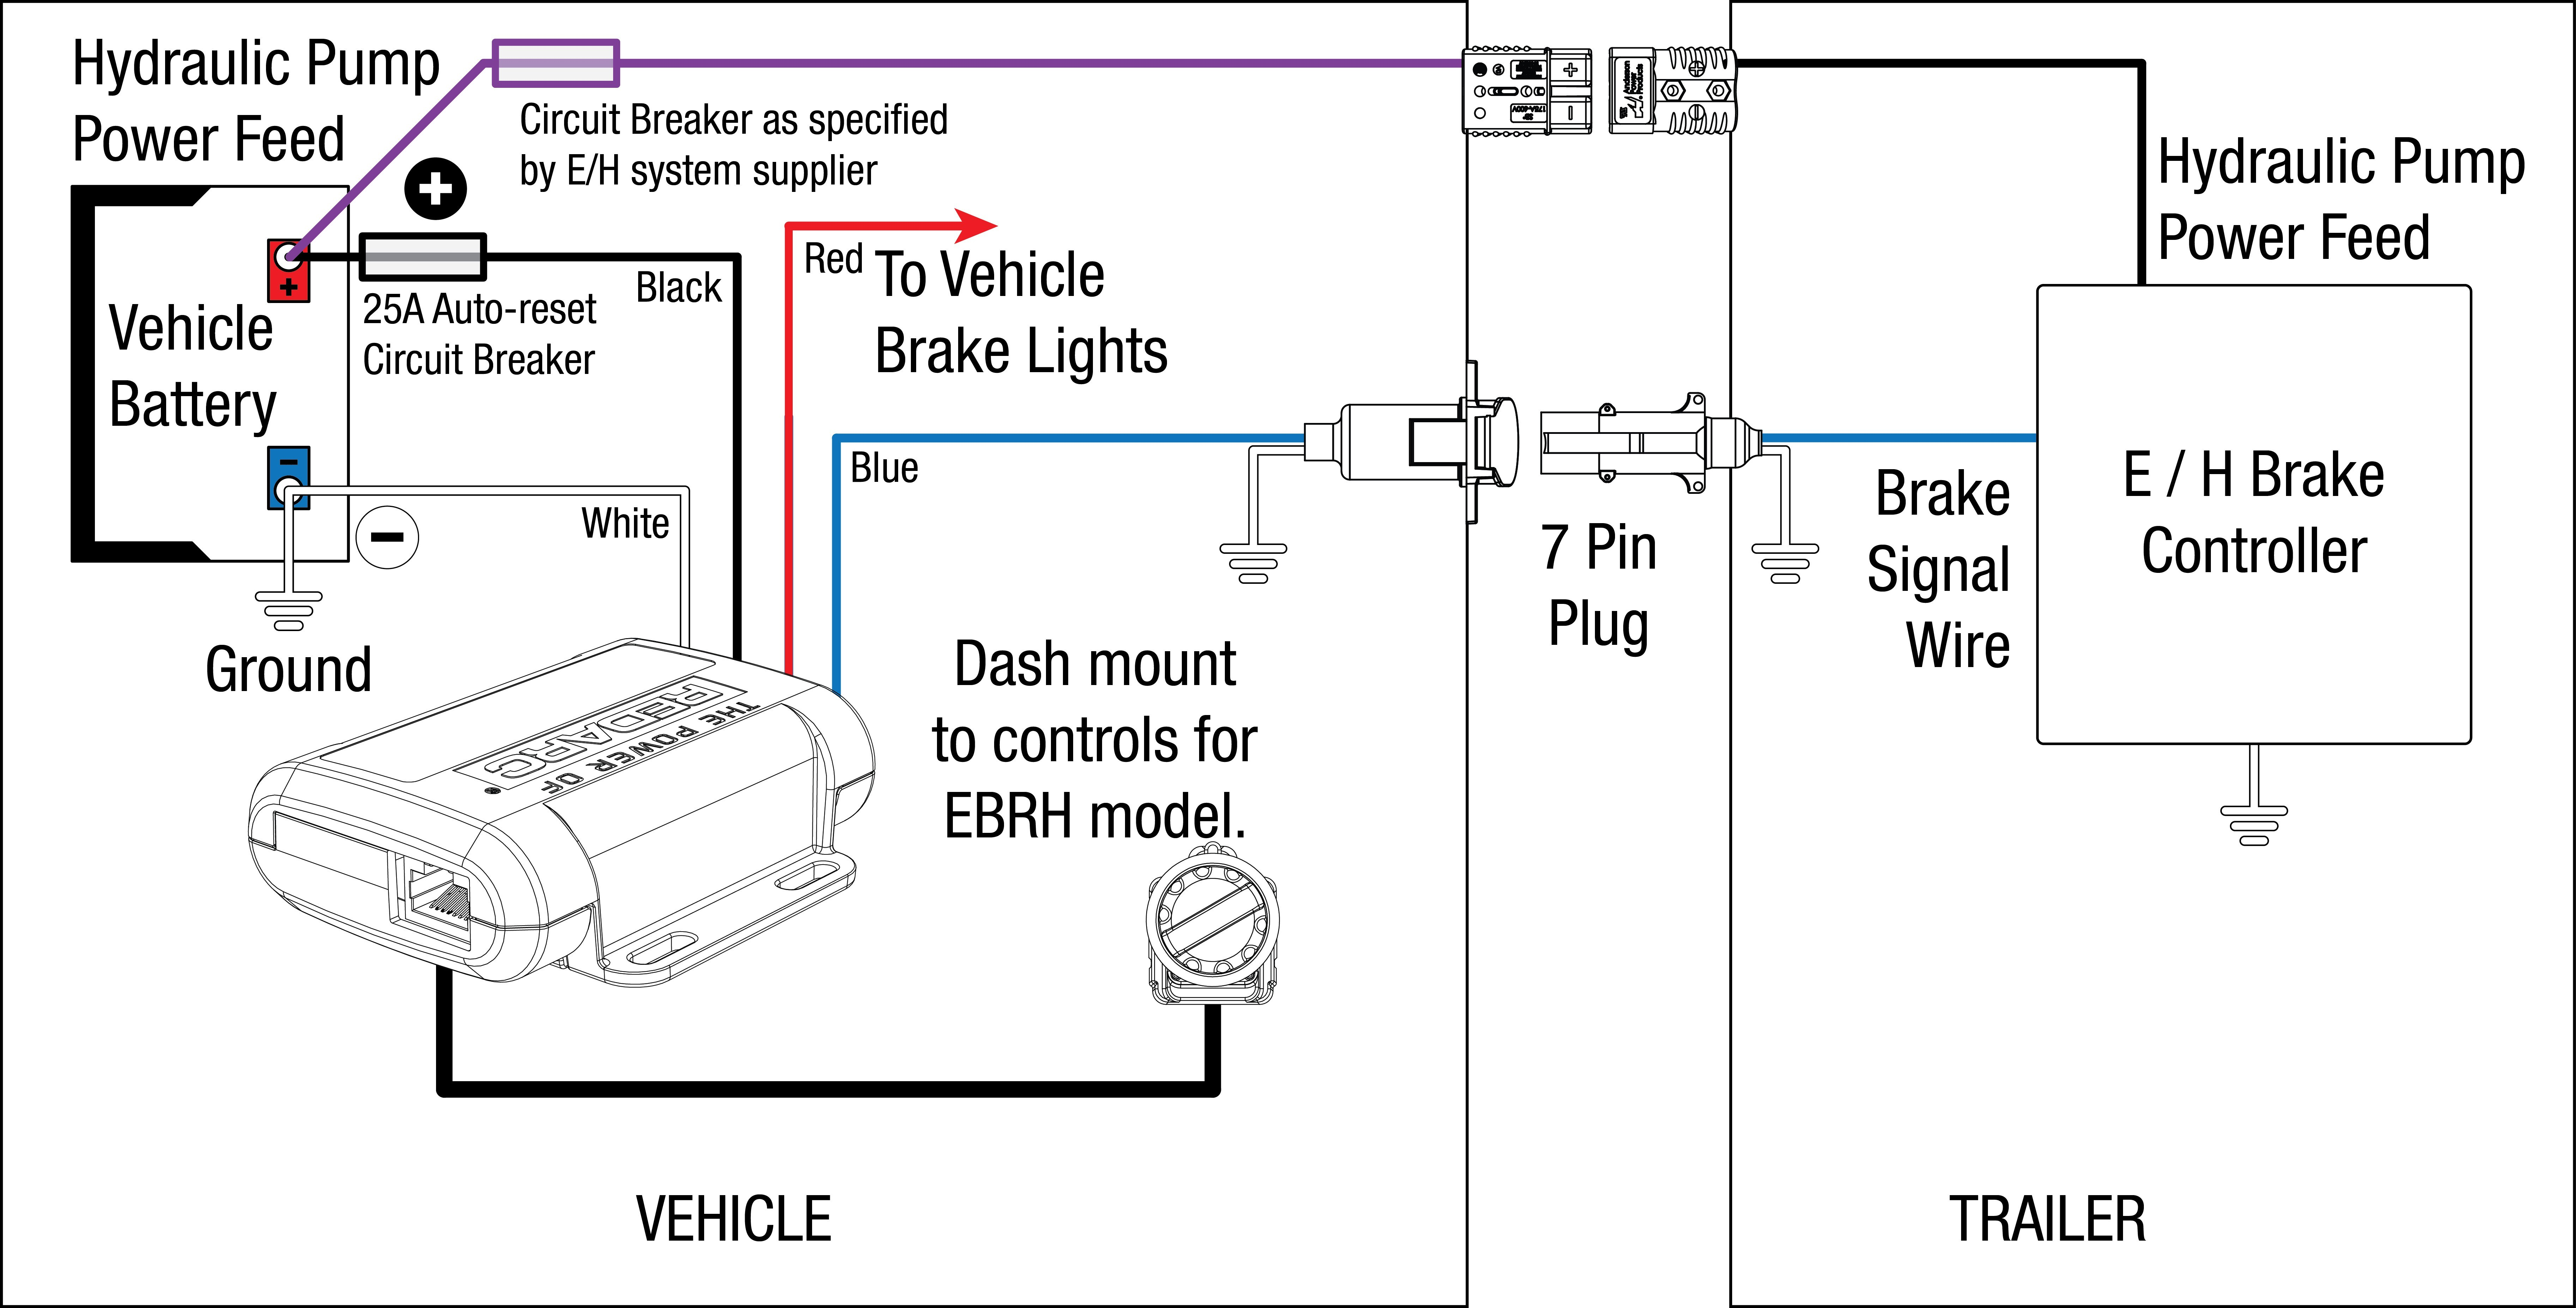 Pod Trailer Brake Controller Wiring Diagram Library Napa Fan Switch Diagrams Of Breakaway Kit Related Post